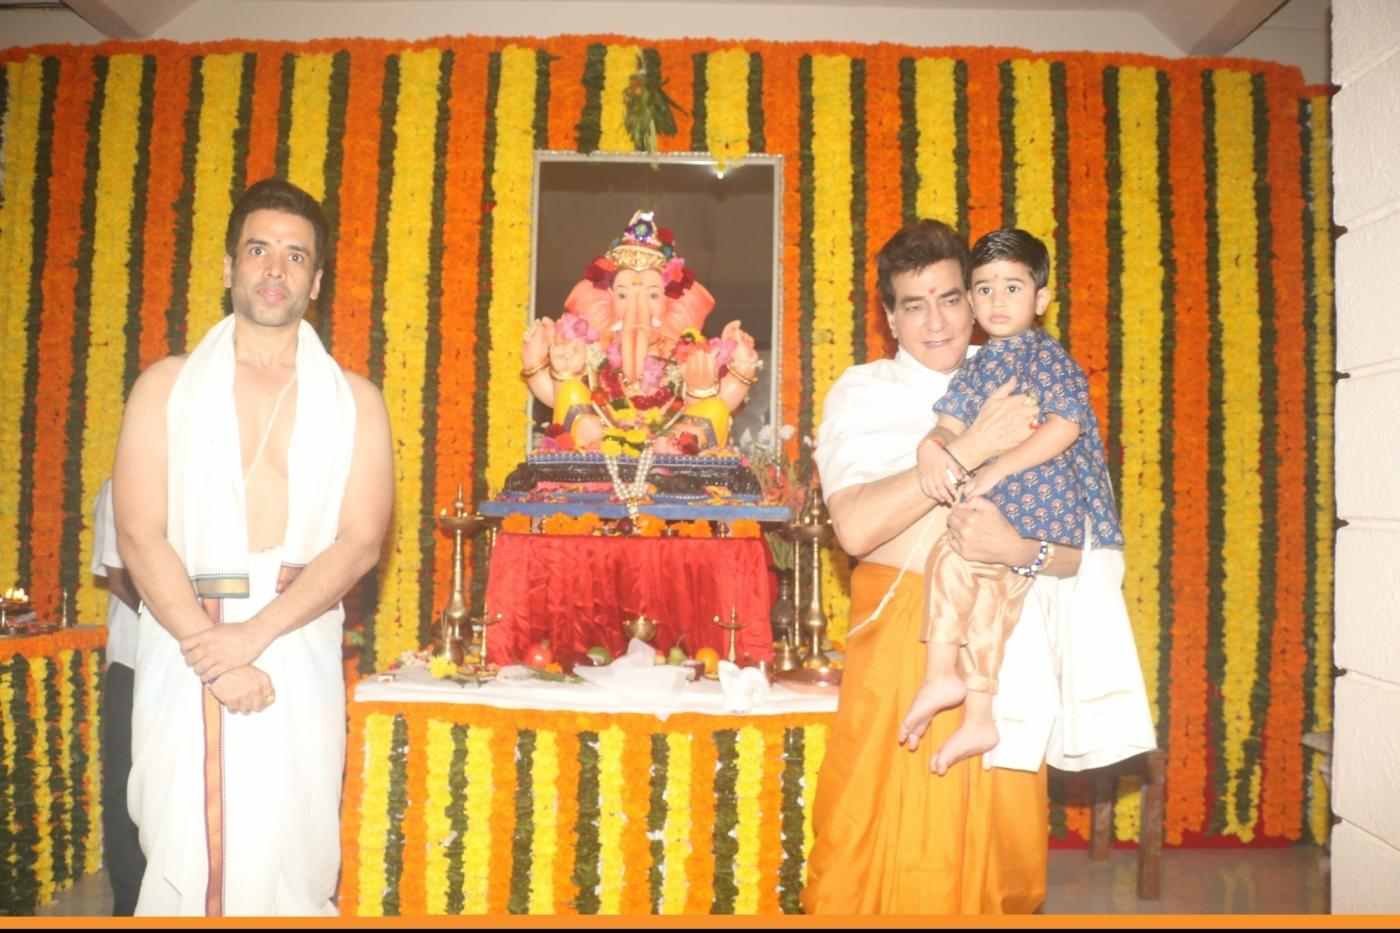 Mumbai: Actor Jeetendra, Tusshar Kapoor and his son Laksshya Kapoor offer prayers to Lord Ganesha on the occasion of Ganesh Chaturthi, in Mumbai on Sept 13, 2018. (Photo: IANS) by .